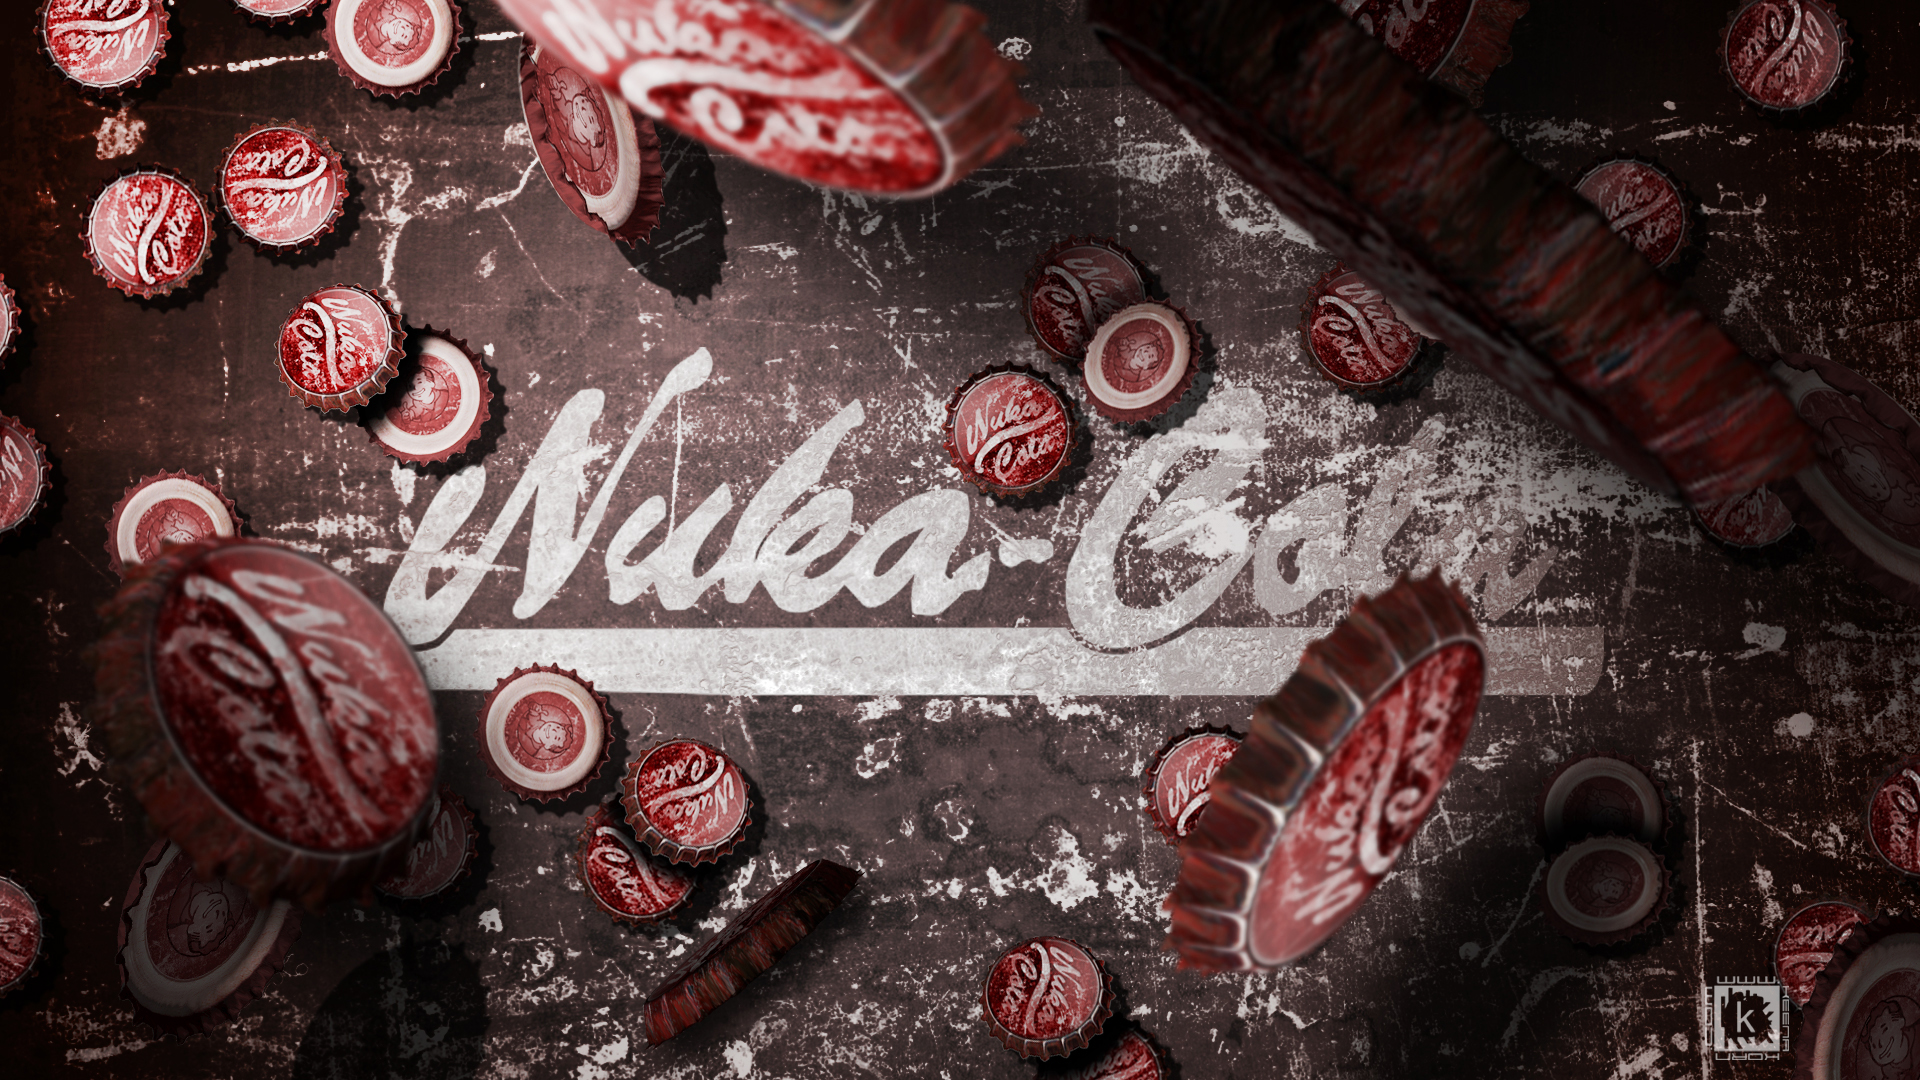 nuka cola fallout wallpaper designed by keena wolff graphic designer las cruces